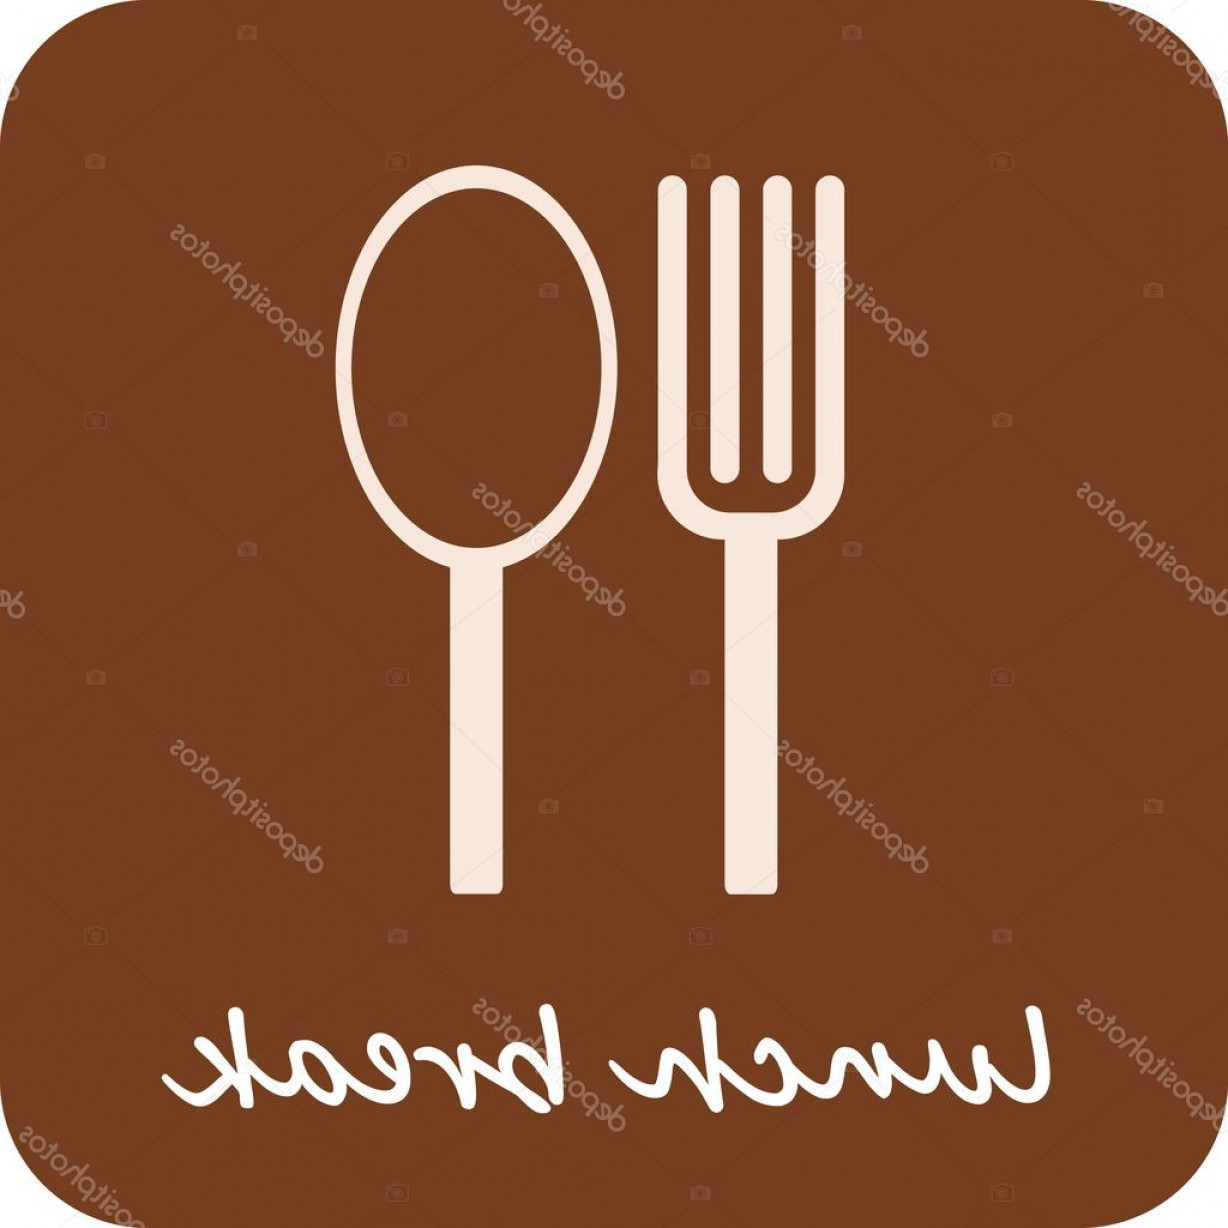 L Unch Icon In Vector: Stock Illustration Lunch Break Isolated Vector Icon